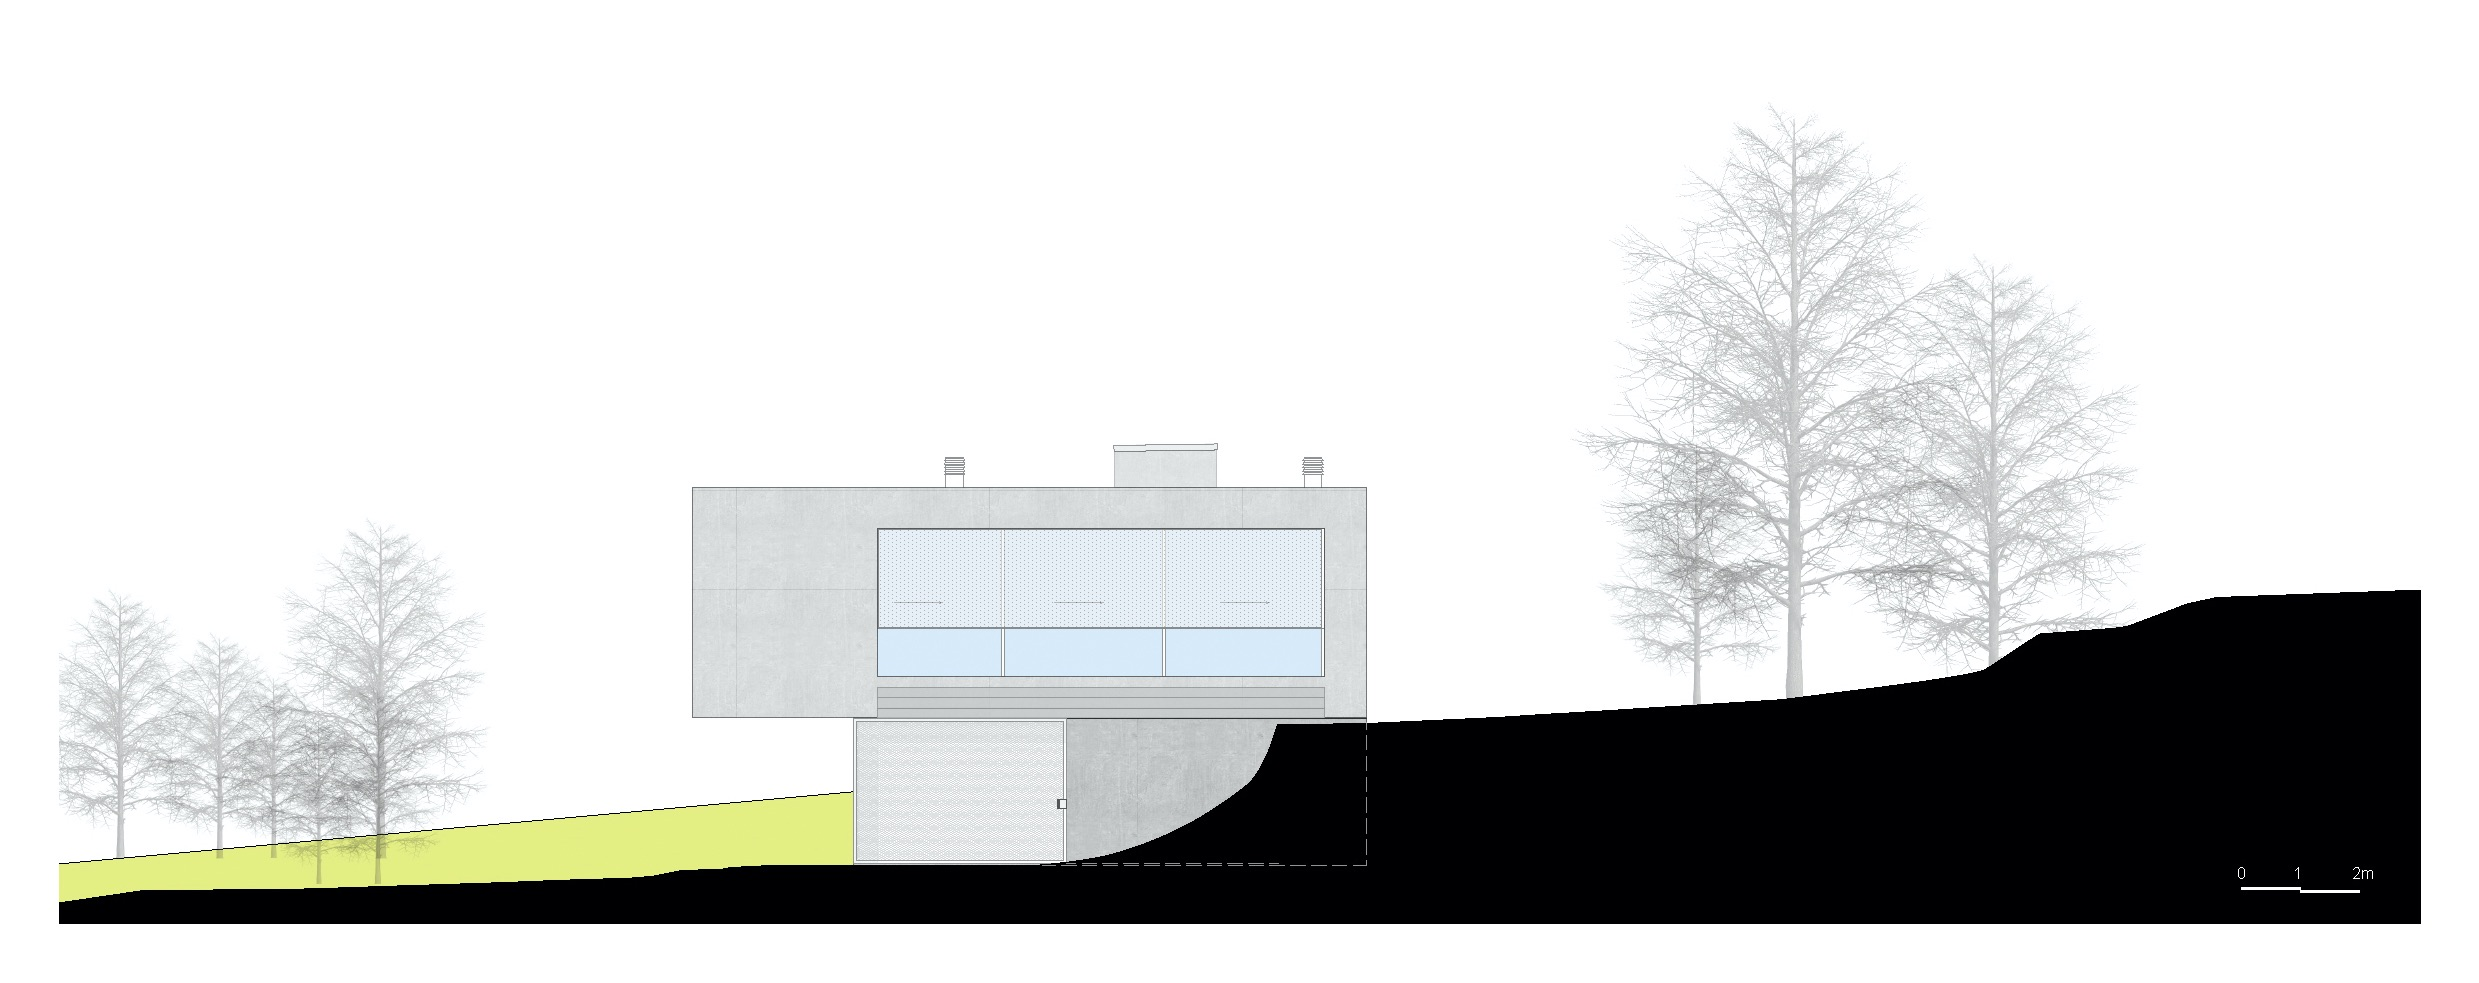 Elevation drawing